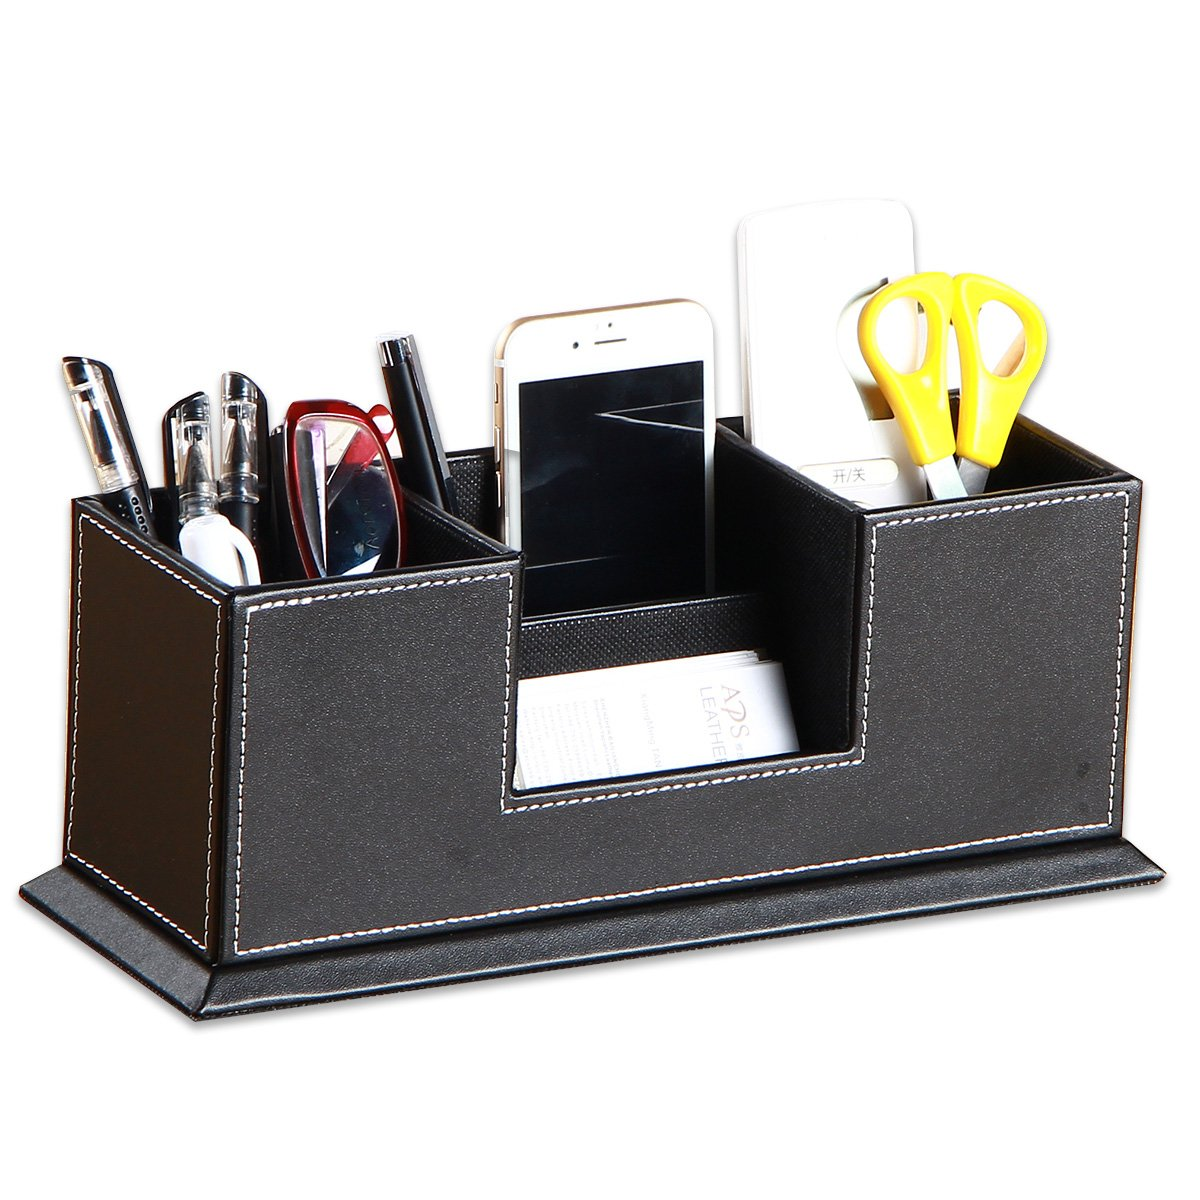 Leather Desk Pen/ Pencil Holder,YAPISHI Faux Leather 4 Divided Compartments Desktop Organizer Office Desk Accessories Container Box(Black) by YAPISHI